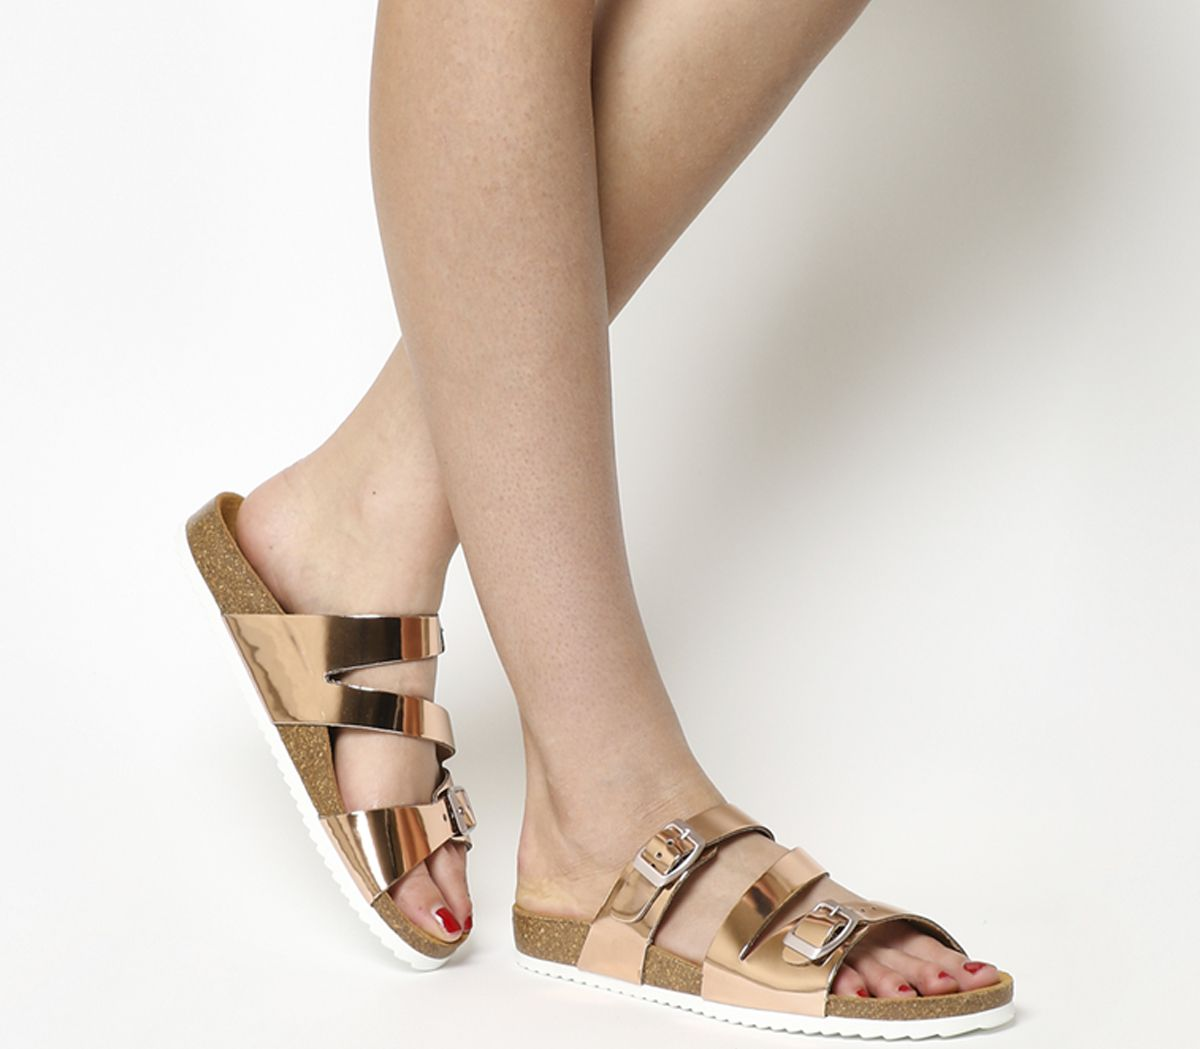 da003c86a0 Office Bounty Cross Strap Footbed Sandals Rose Gold - Sandals